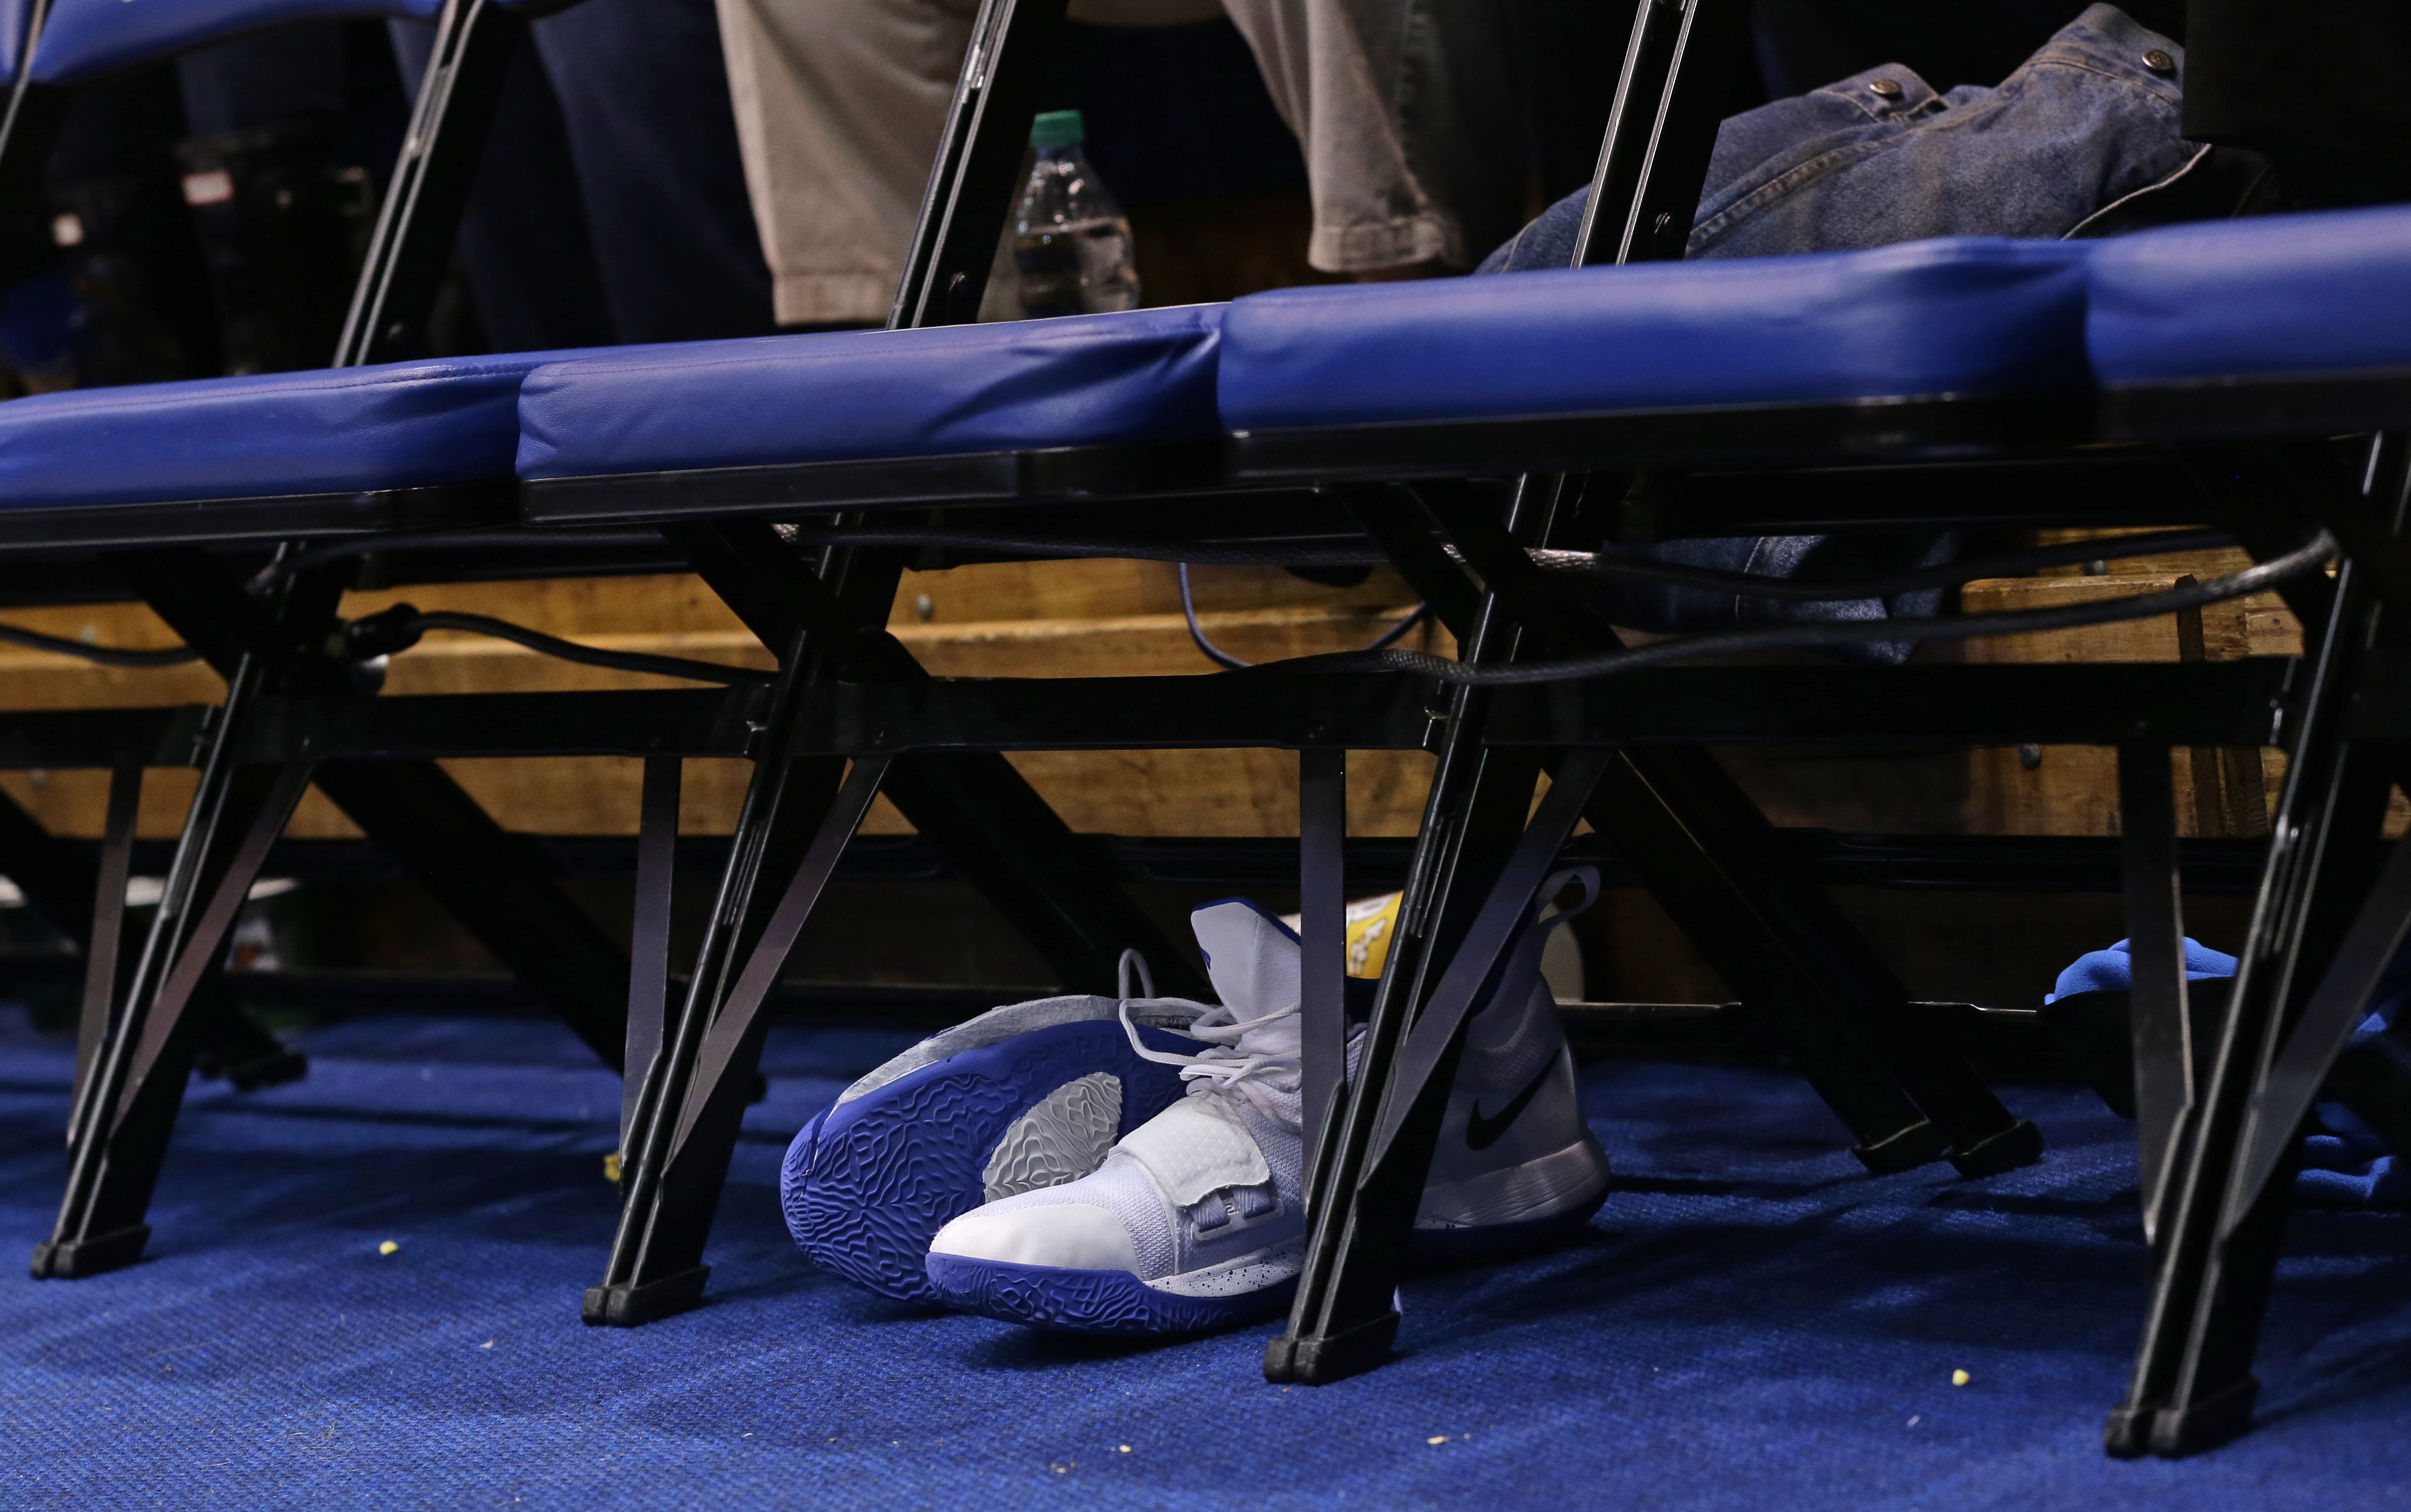 8567438eefc Zion Williamson Nike shoe blowout leads Obama to say